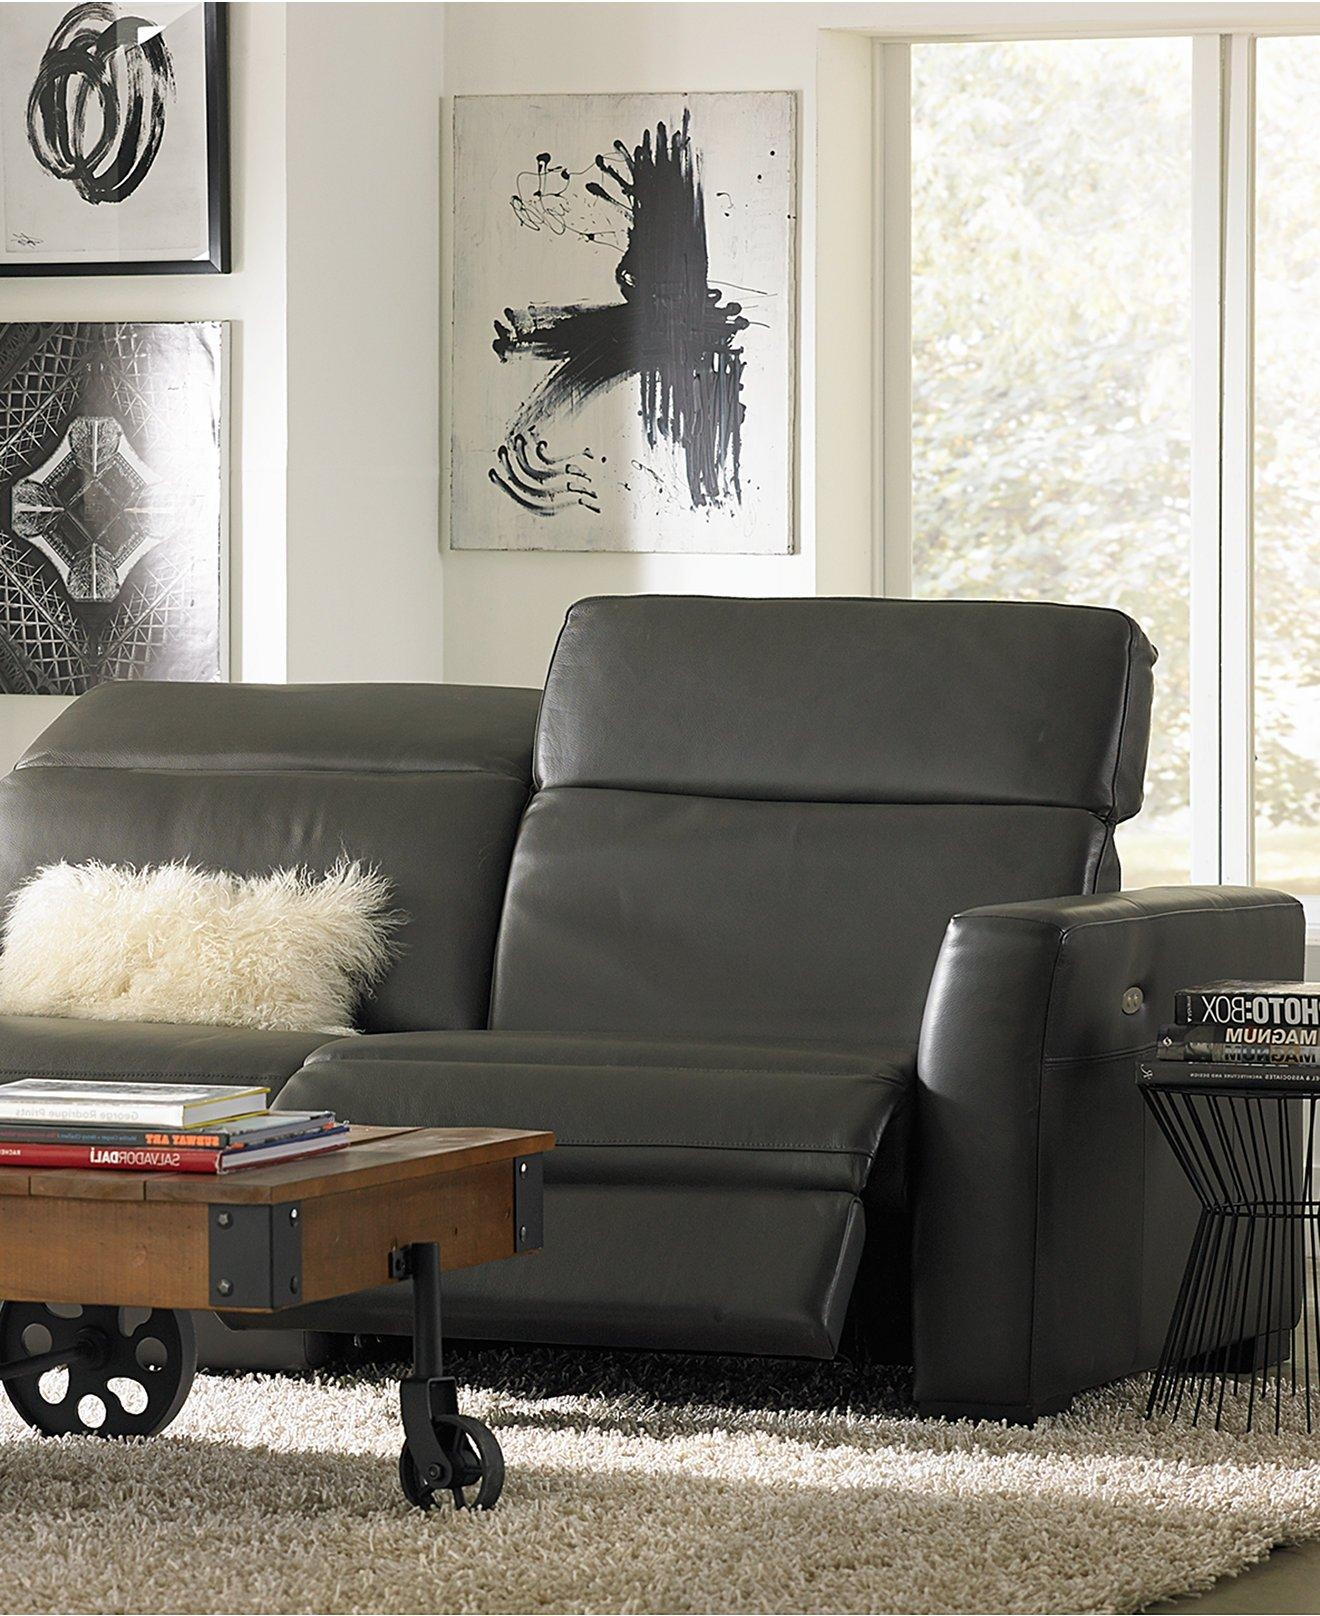 Sofas: Macys Leather Furniture | Macys Sectional | Macys Sectional Inside 6 Piece Leather Sectional Sofa (View 12 of 15)